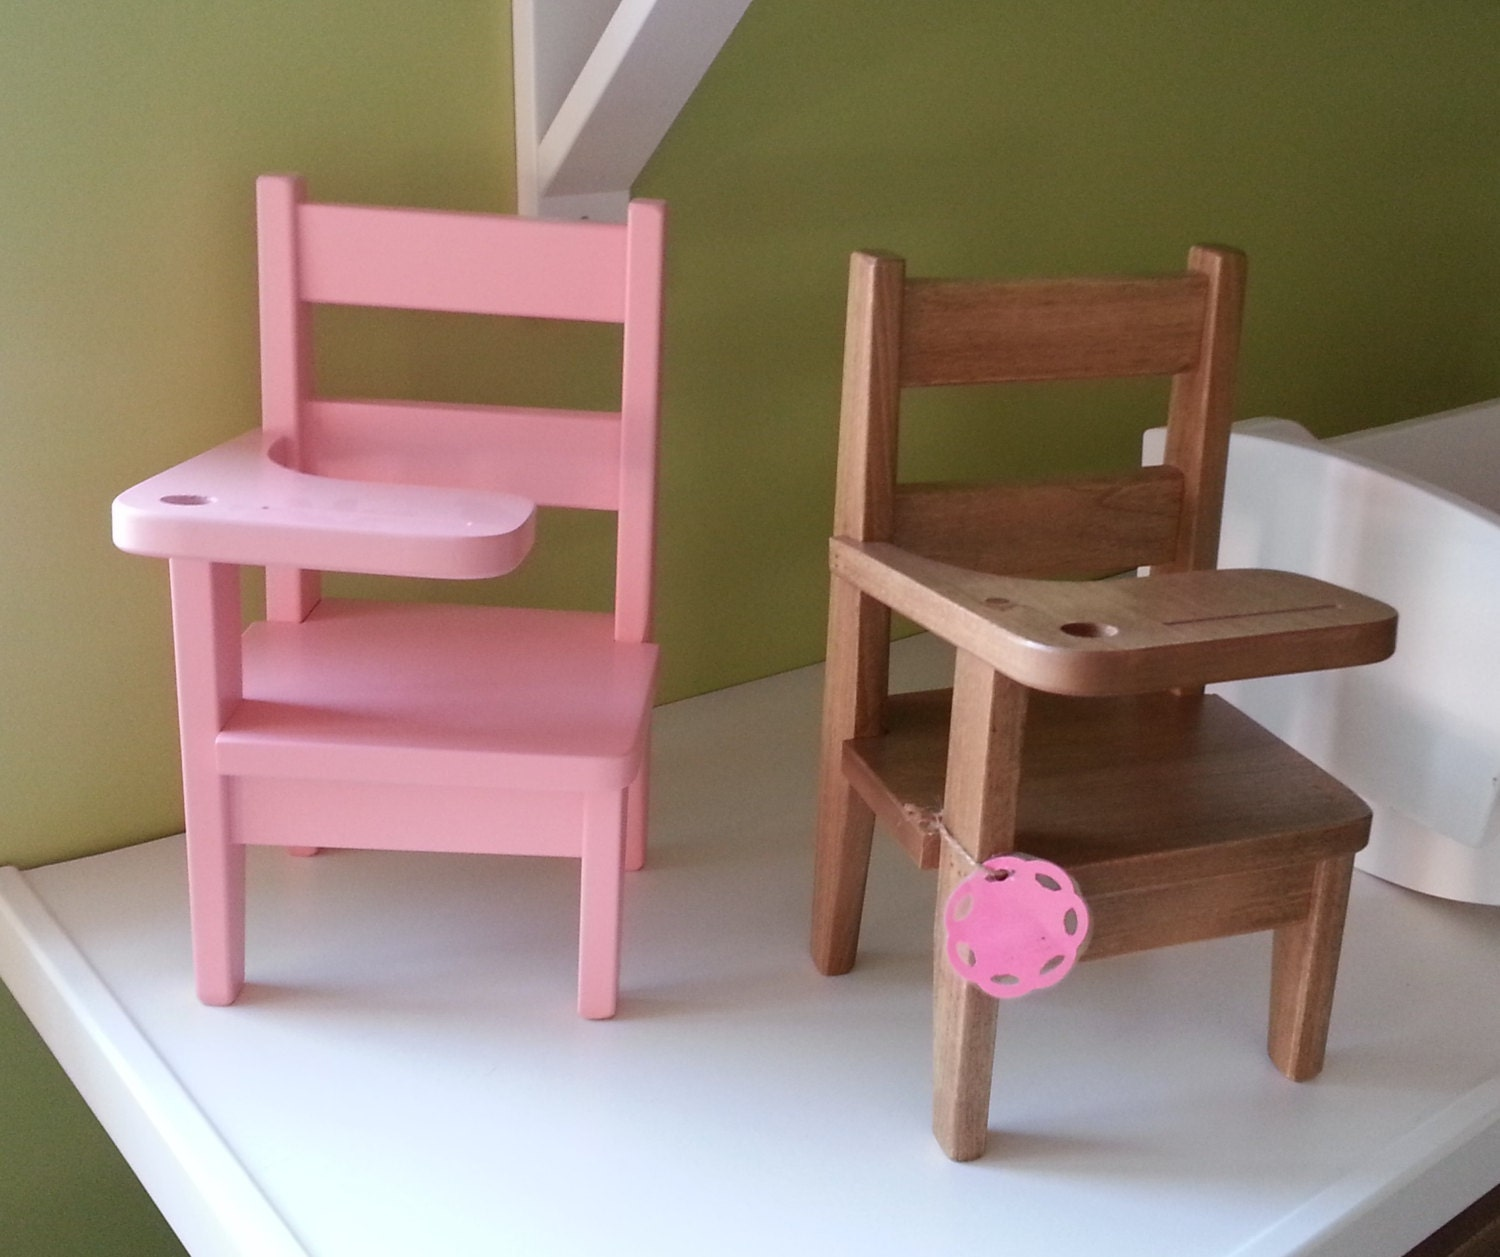 Outside Wood Furniture as well Theamishcasket besides School Desk Chair Solid Wood Amish Made in addition Mission Style Dining Room Set together with Awesome Chair Designers. on handmade amish wooden rocking chairs